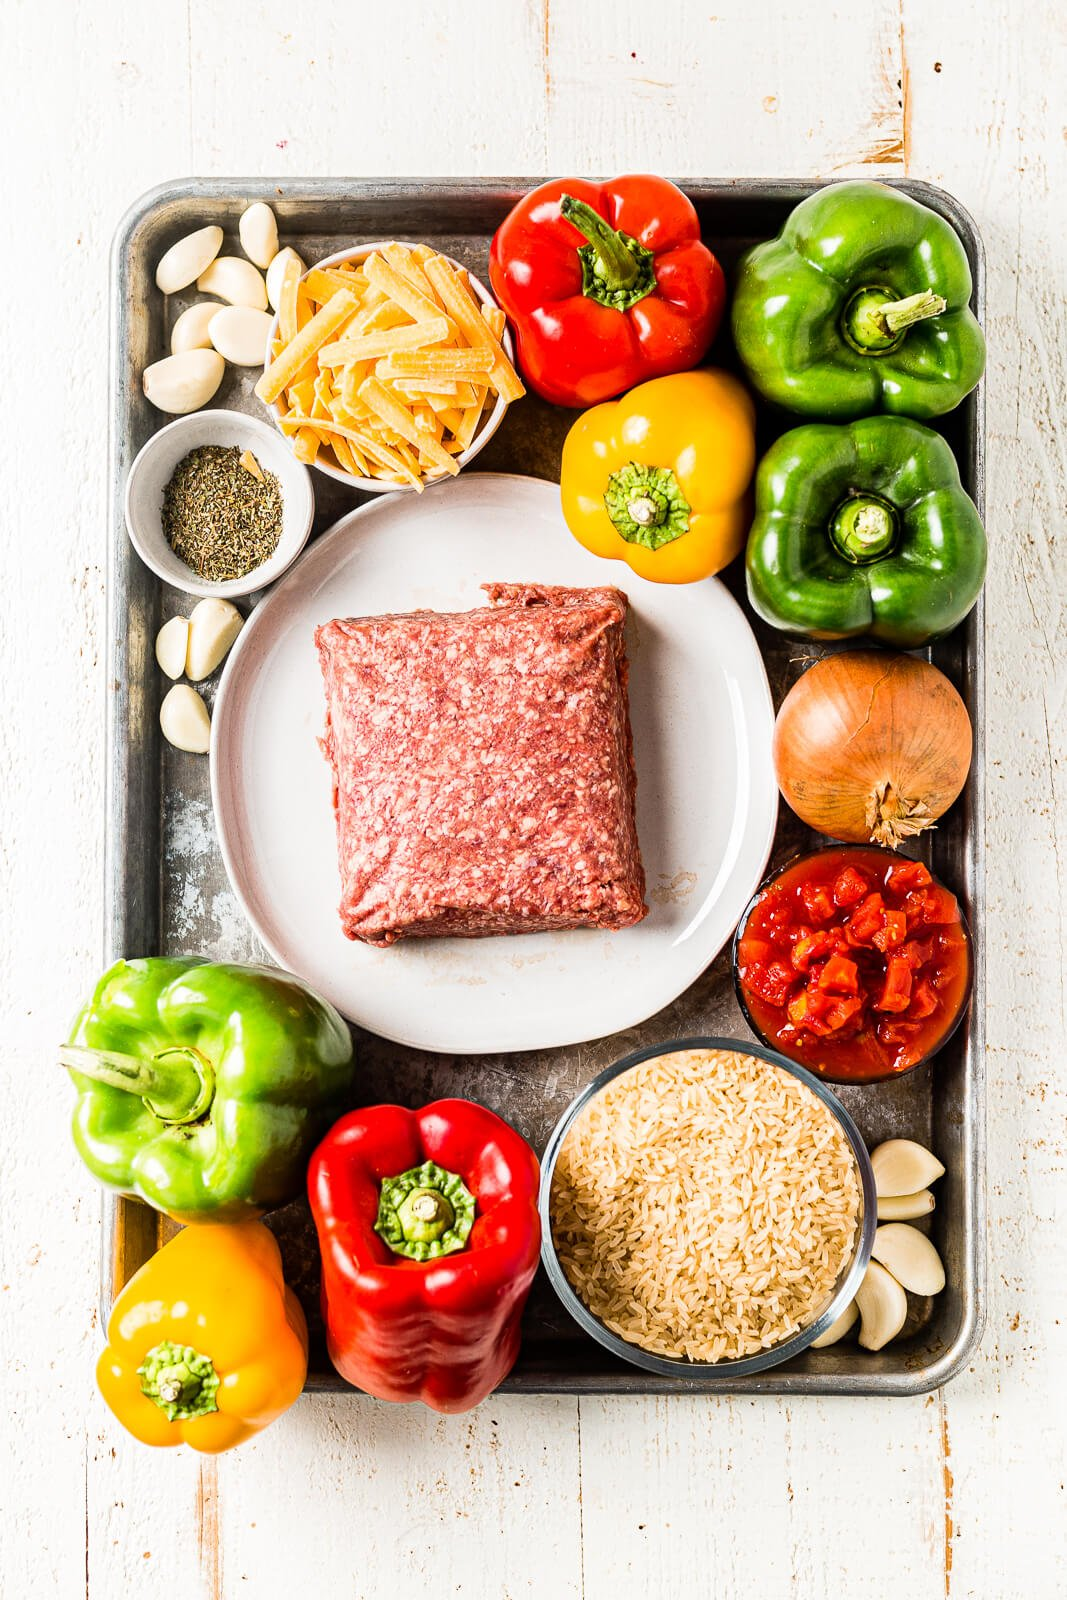 Ingredients for air fryer stuffed peppers arranged on a sheet pan before cooking